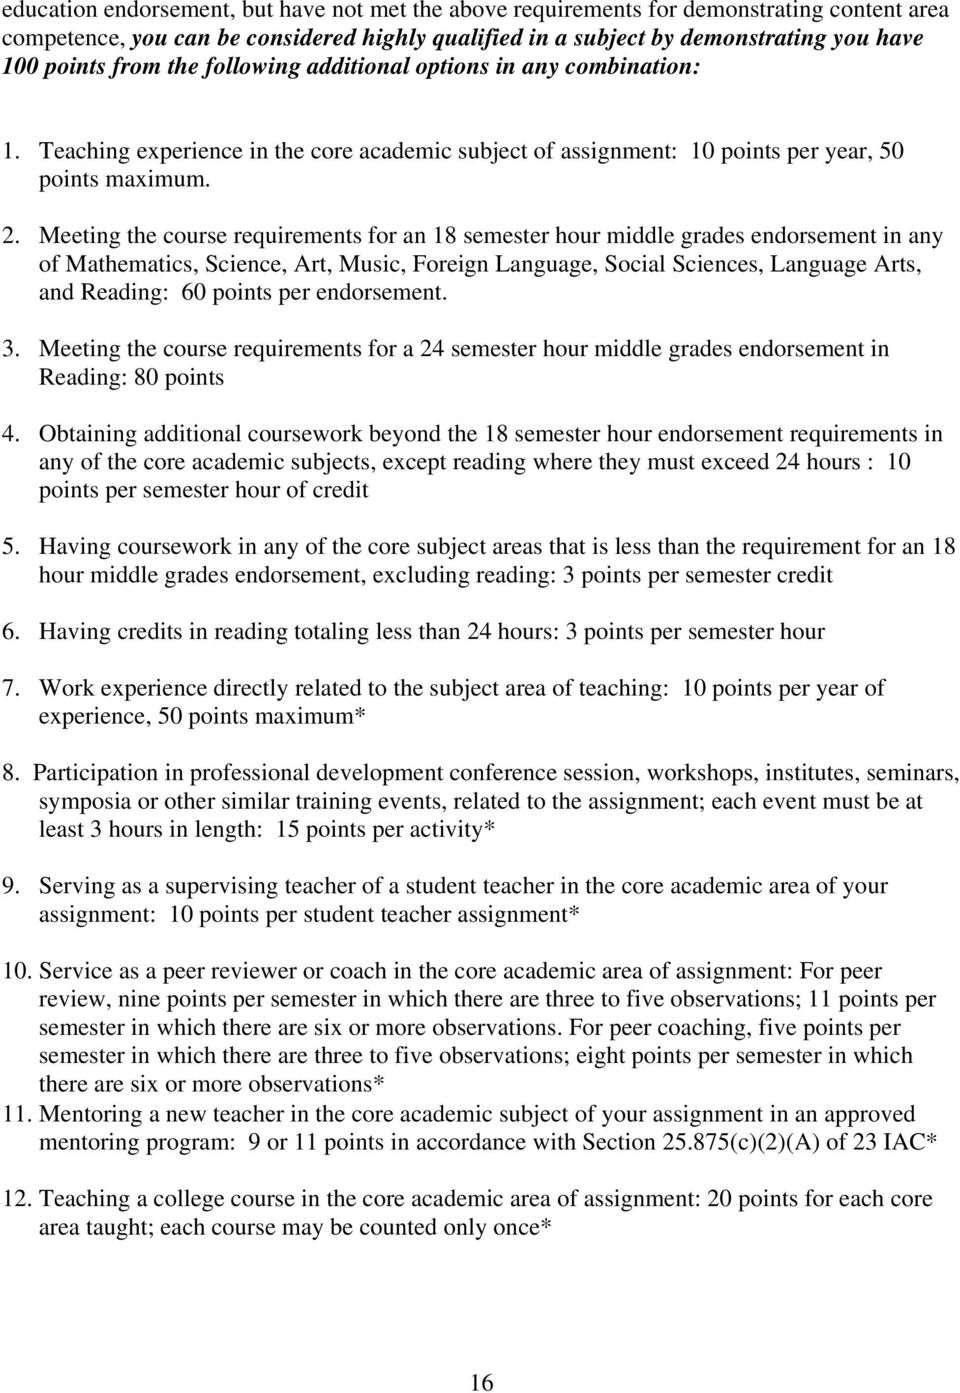 Meeting the course requirements for an 18 semester hour middle grades endorsement in any of Mathematics, Science, Art, Music, Foreign Language, Social Sciences, Language Arts, and Reading: 60 points